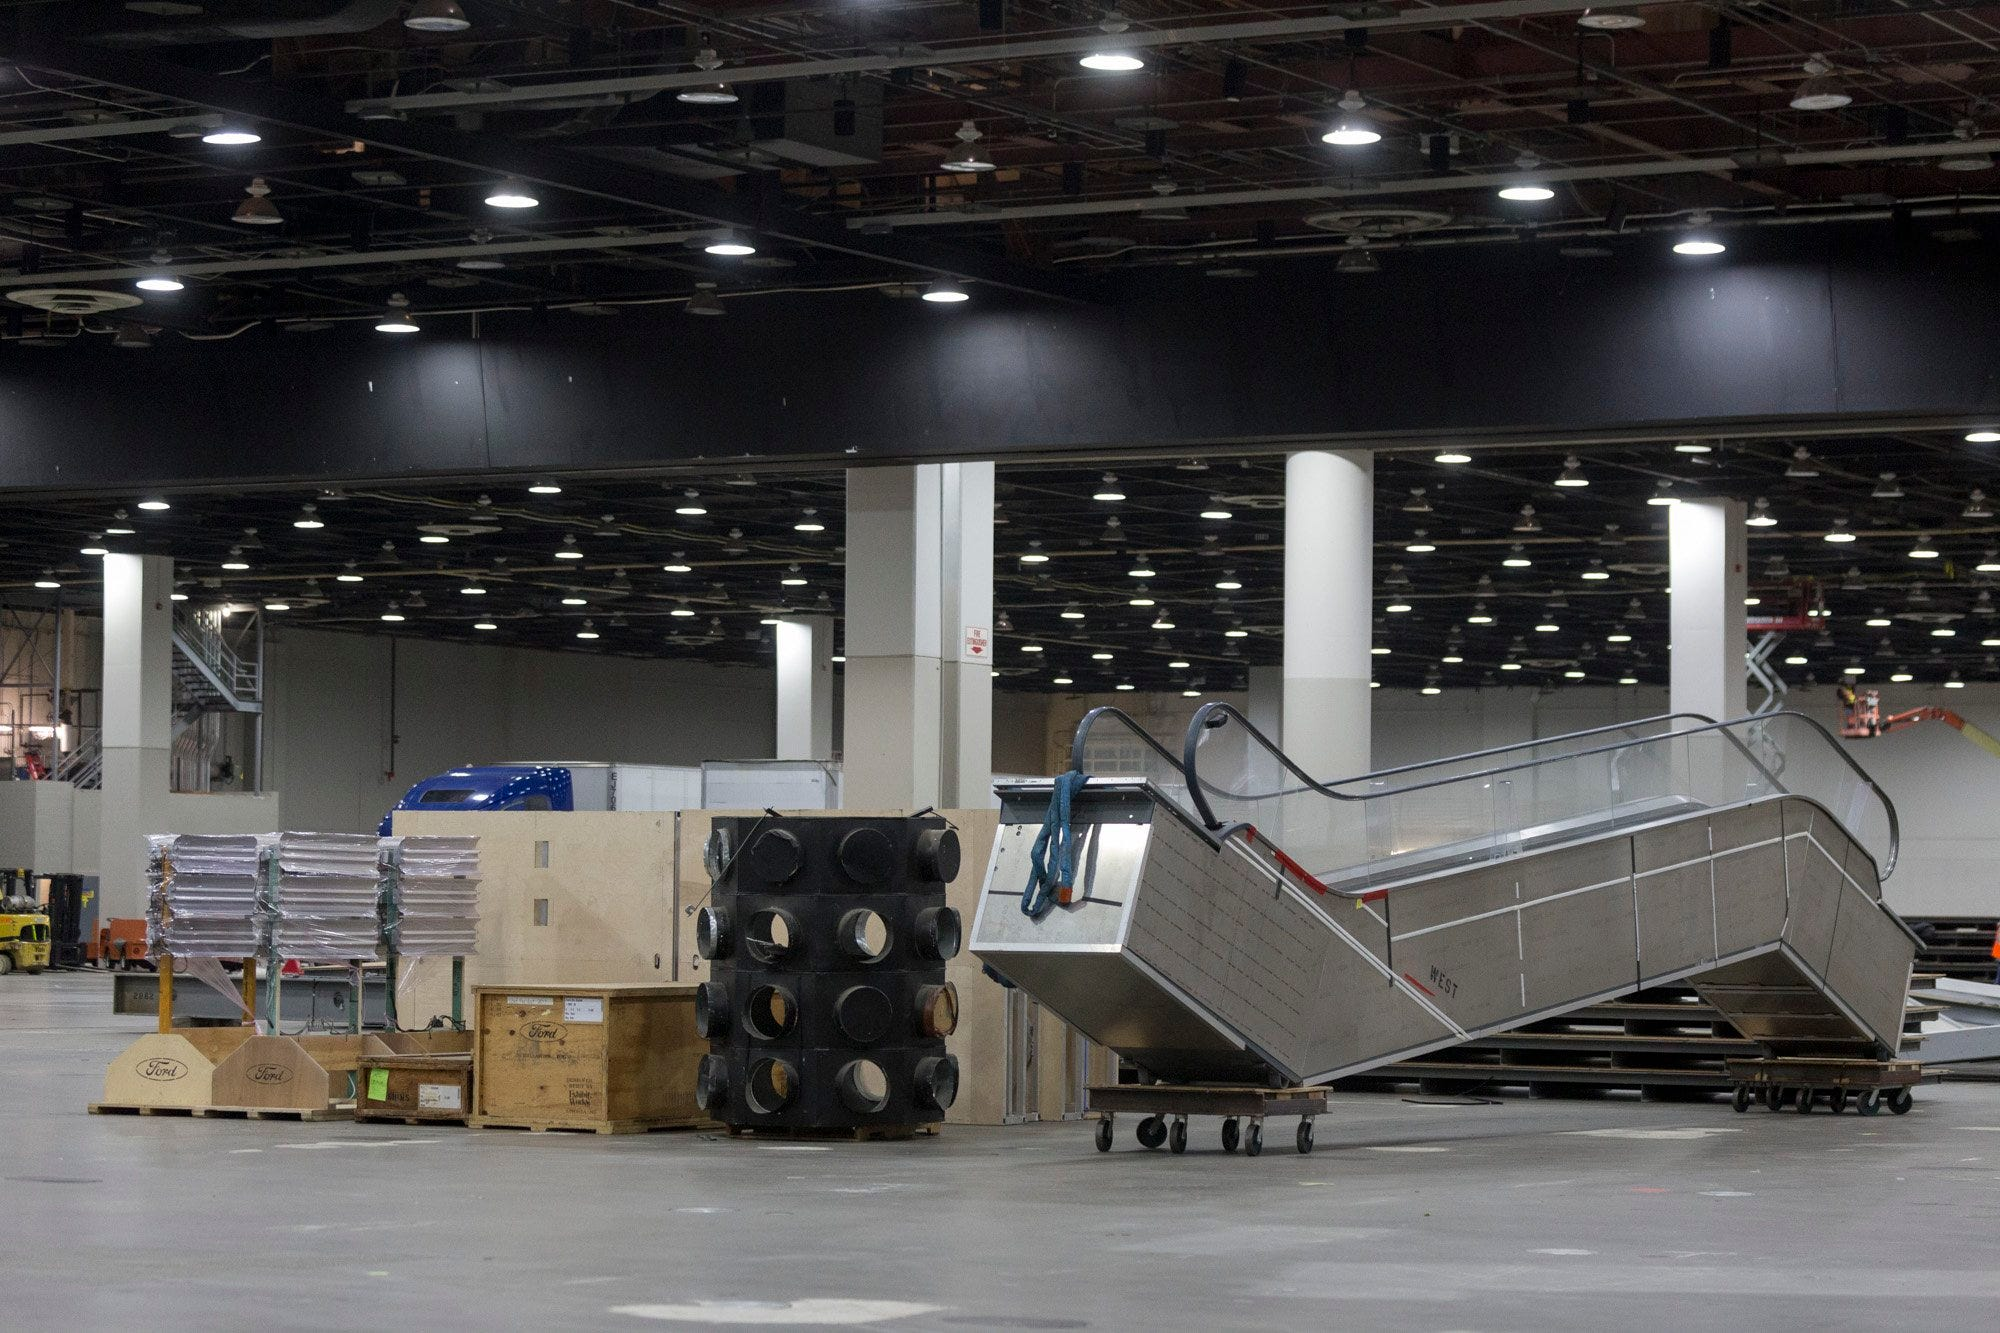 Equipment, including an escalator, is ready for assembly